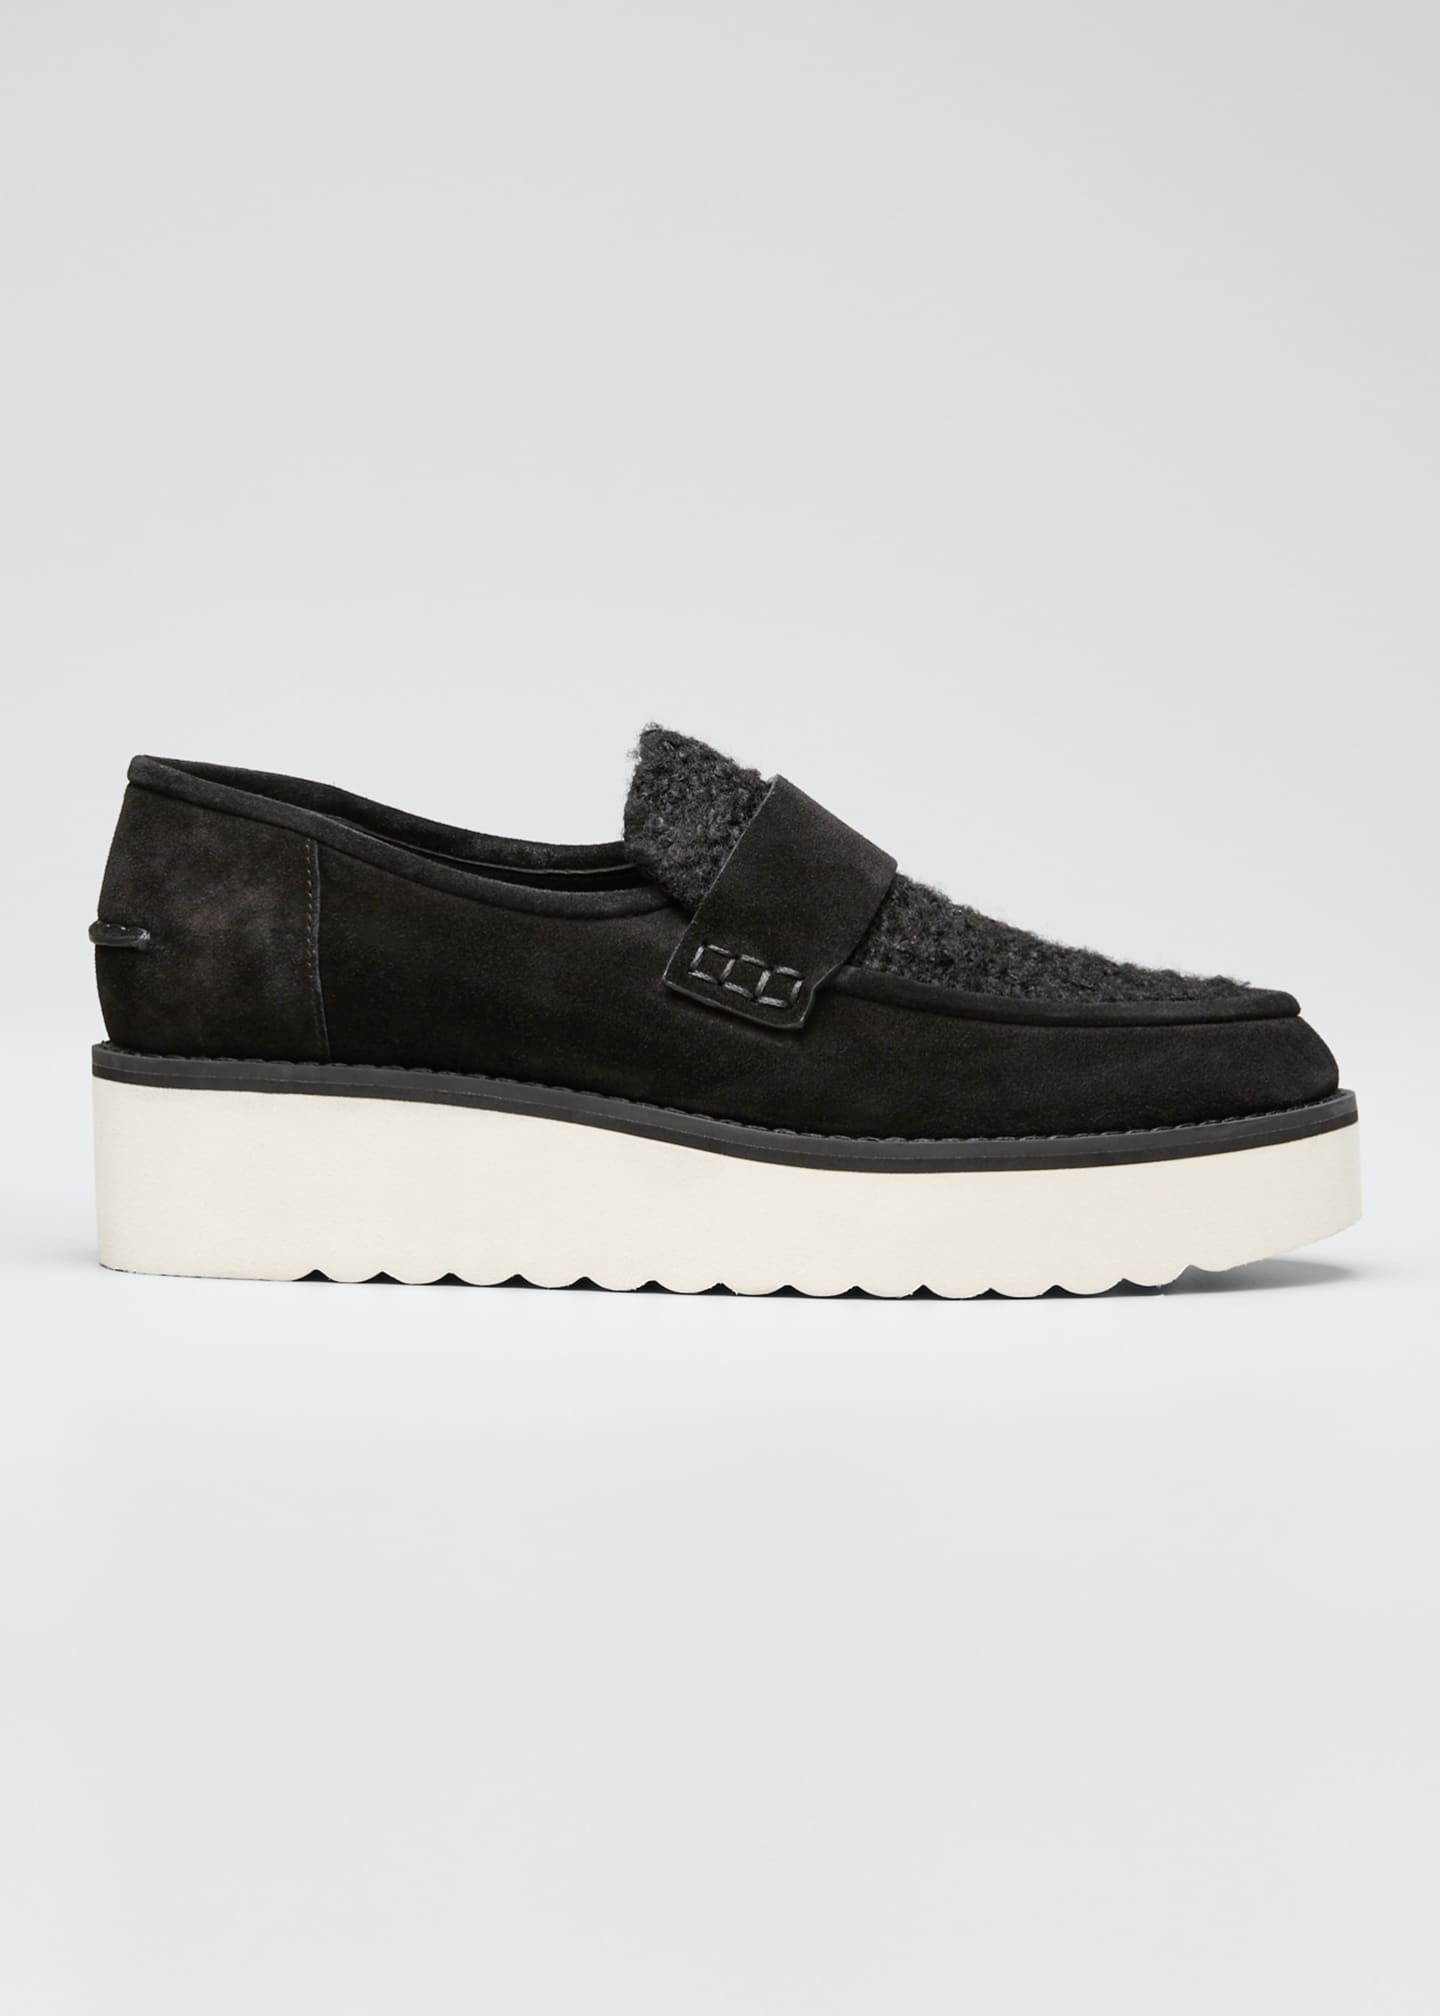 Image 1 of 3: Zola Suede and Shearling Chunky Loafers